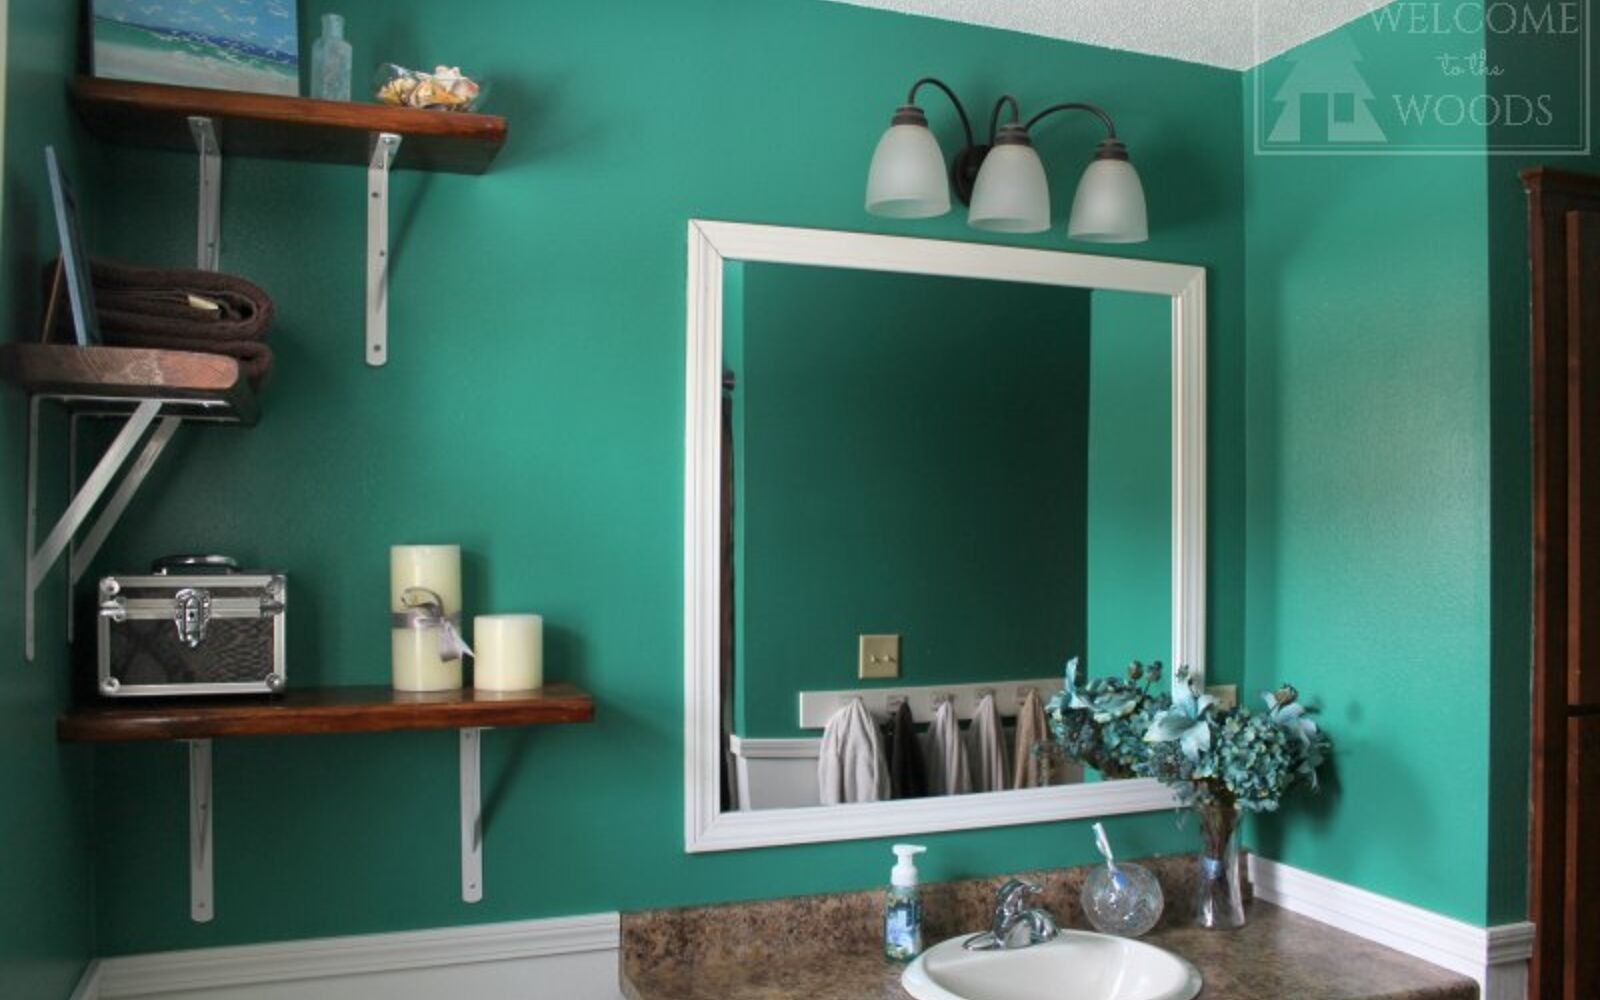 s 10 awe inspiring ways to vastly improve your home this weekend, Wainscot Your Bathroom to Perfection